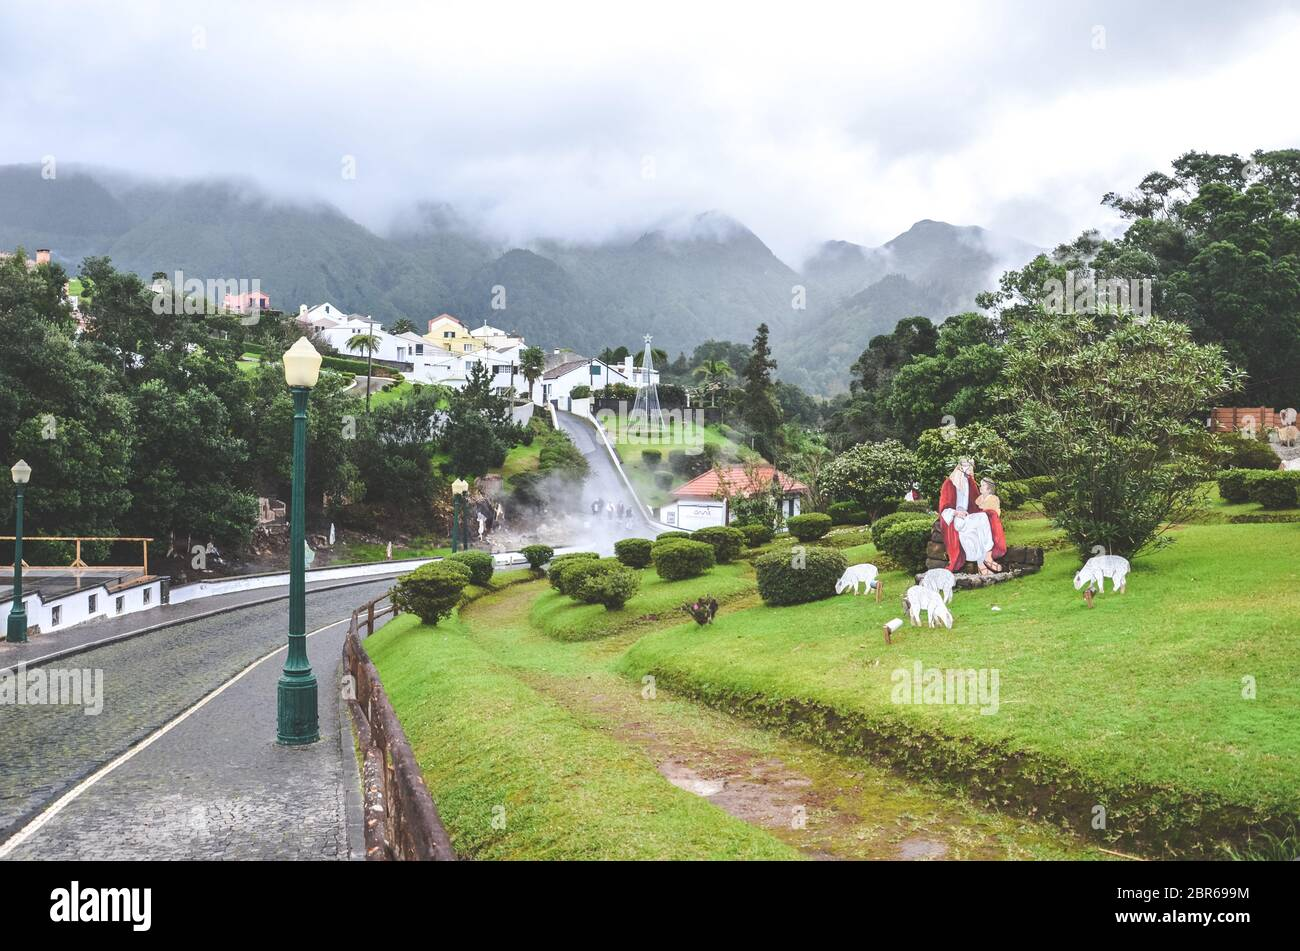 Portugal 2020 Christmas Furnas, Azores, Portugal   Jan 13, 2020: Volcanic hot springs in